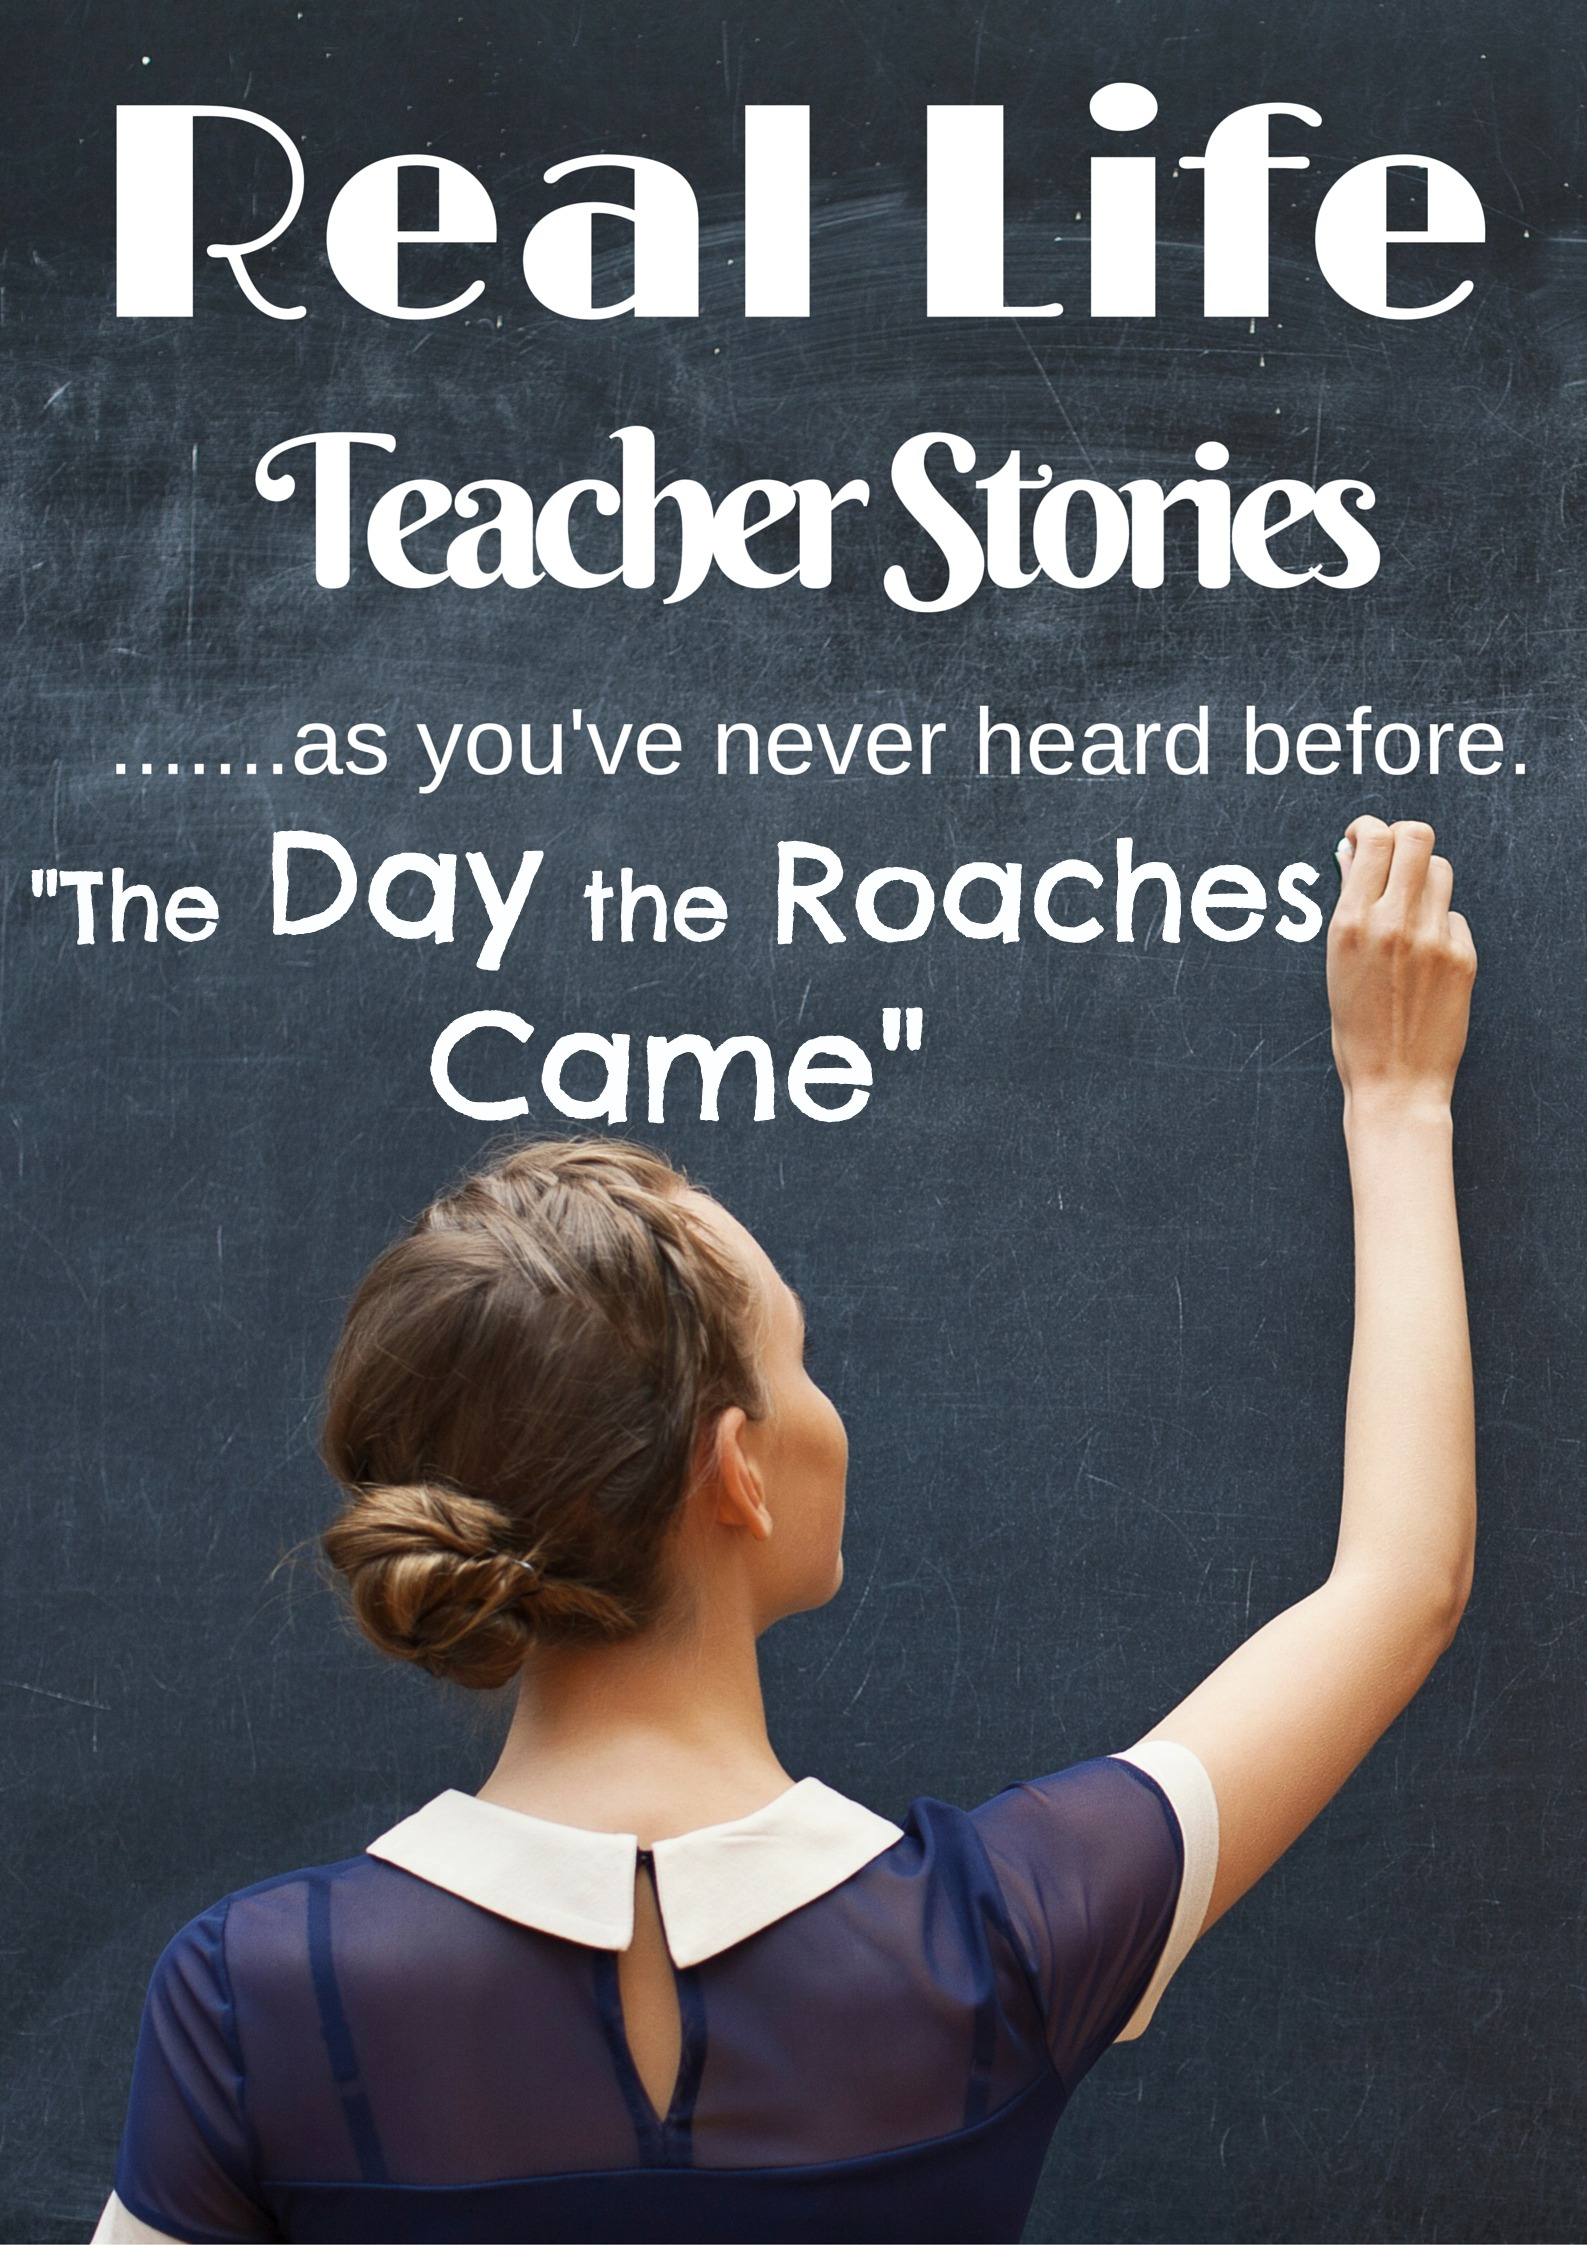 Life Teacher Stories - The Day the Roaches Came